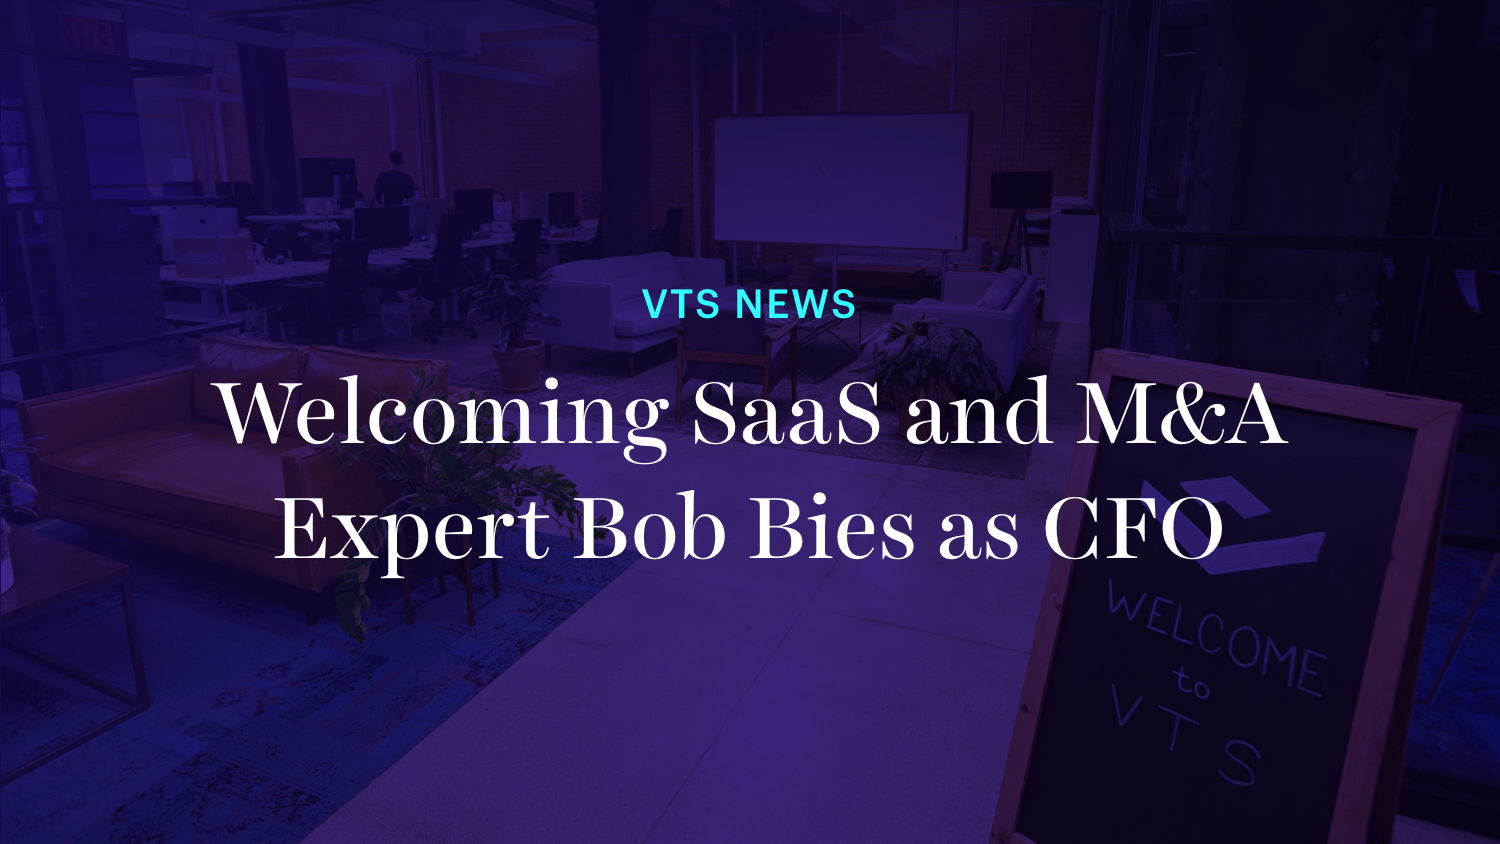 Welcoming SaaS and M&A Expert Bob Bies as CFO